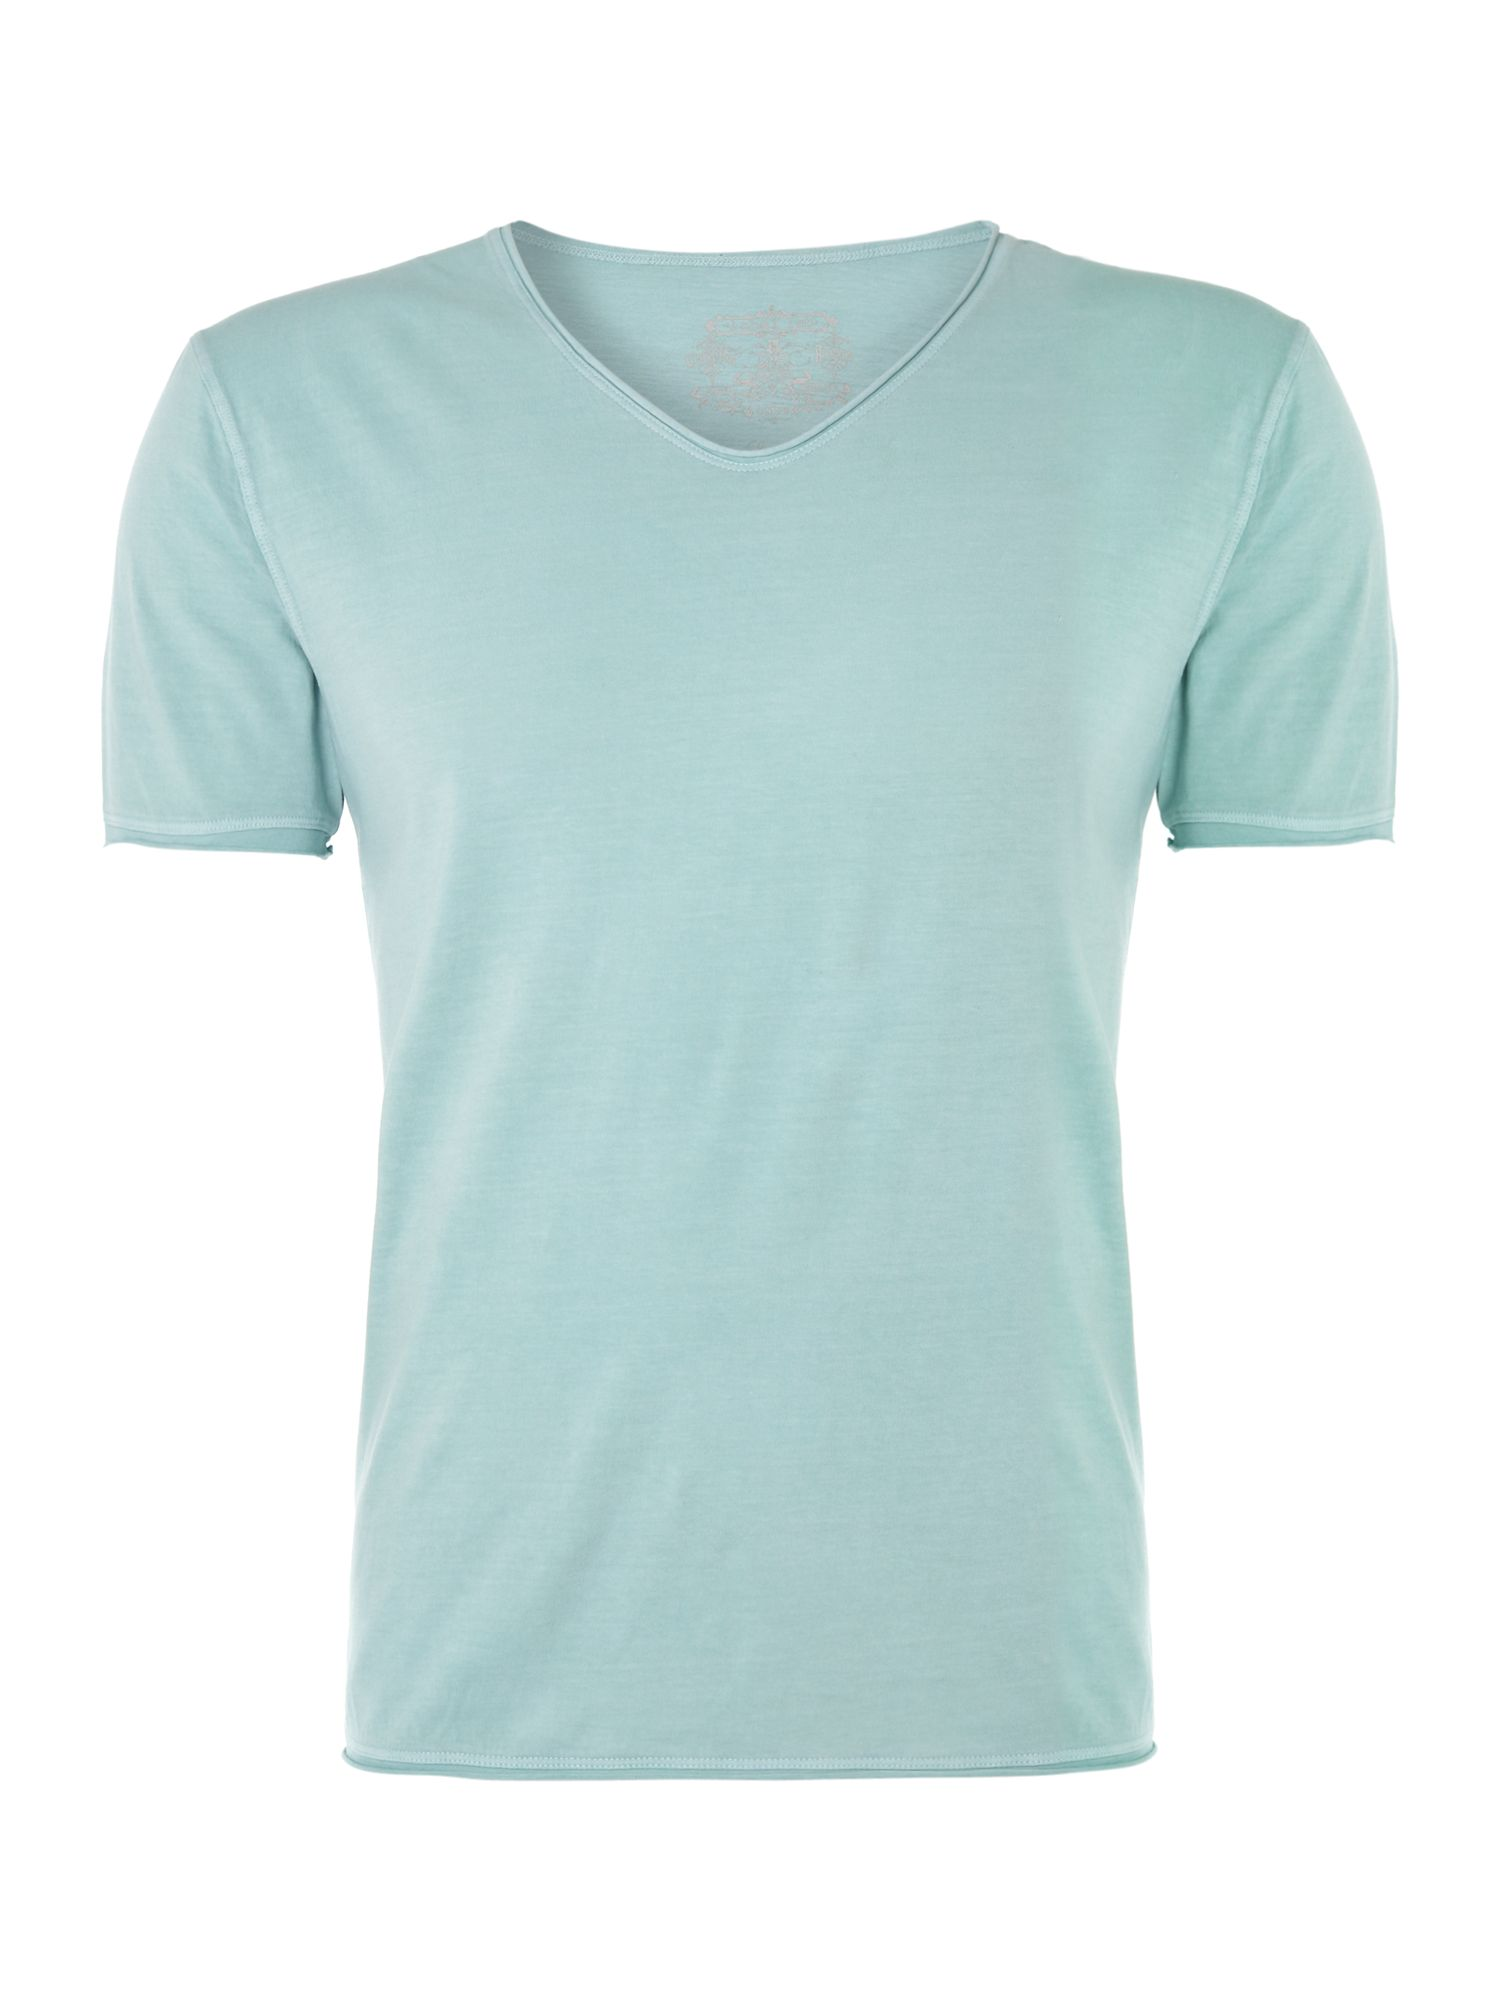 Band pigment jersey scoop neck T-shirt